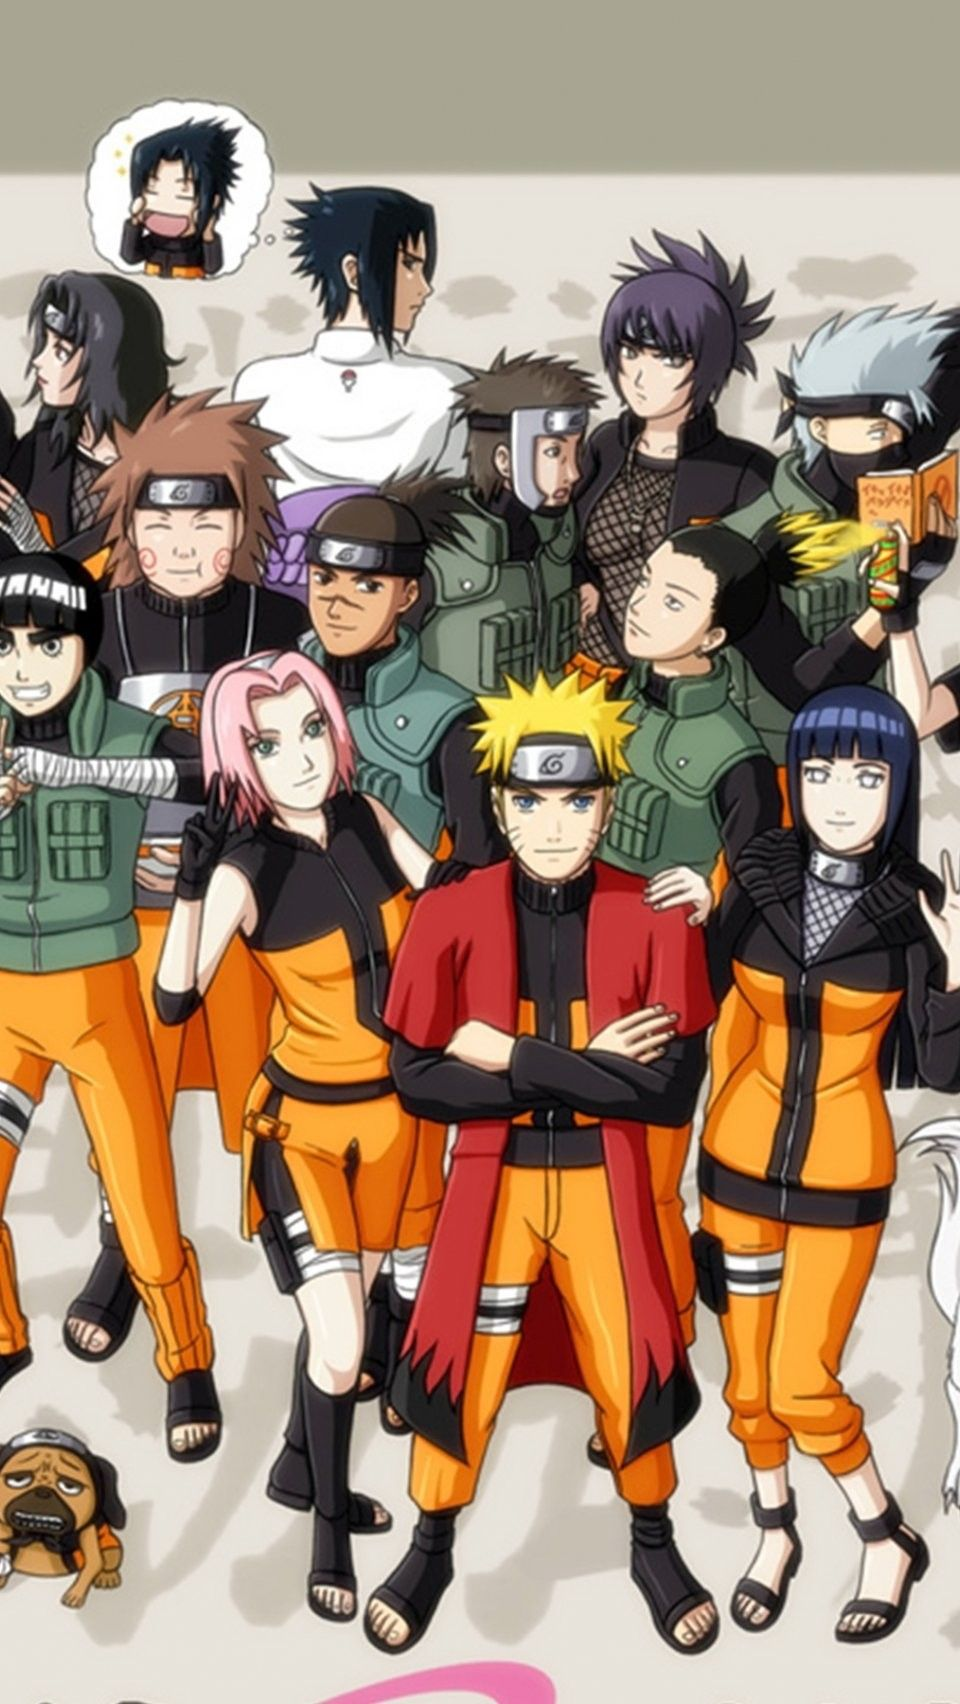 Naruto Shippuden Wallpaper Iphone Posted By Michelle Tremblay